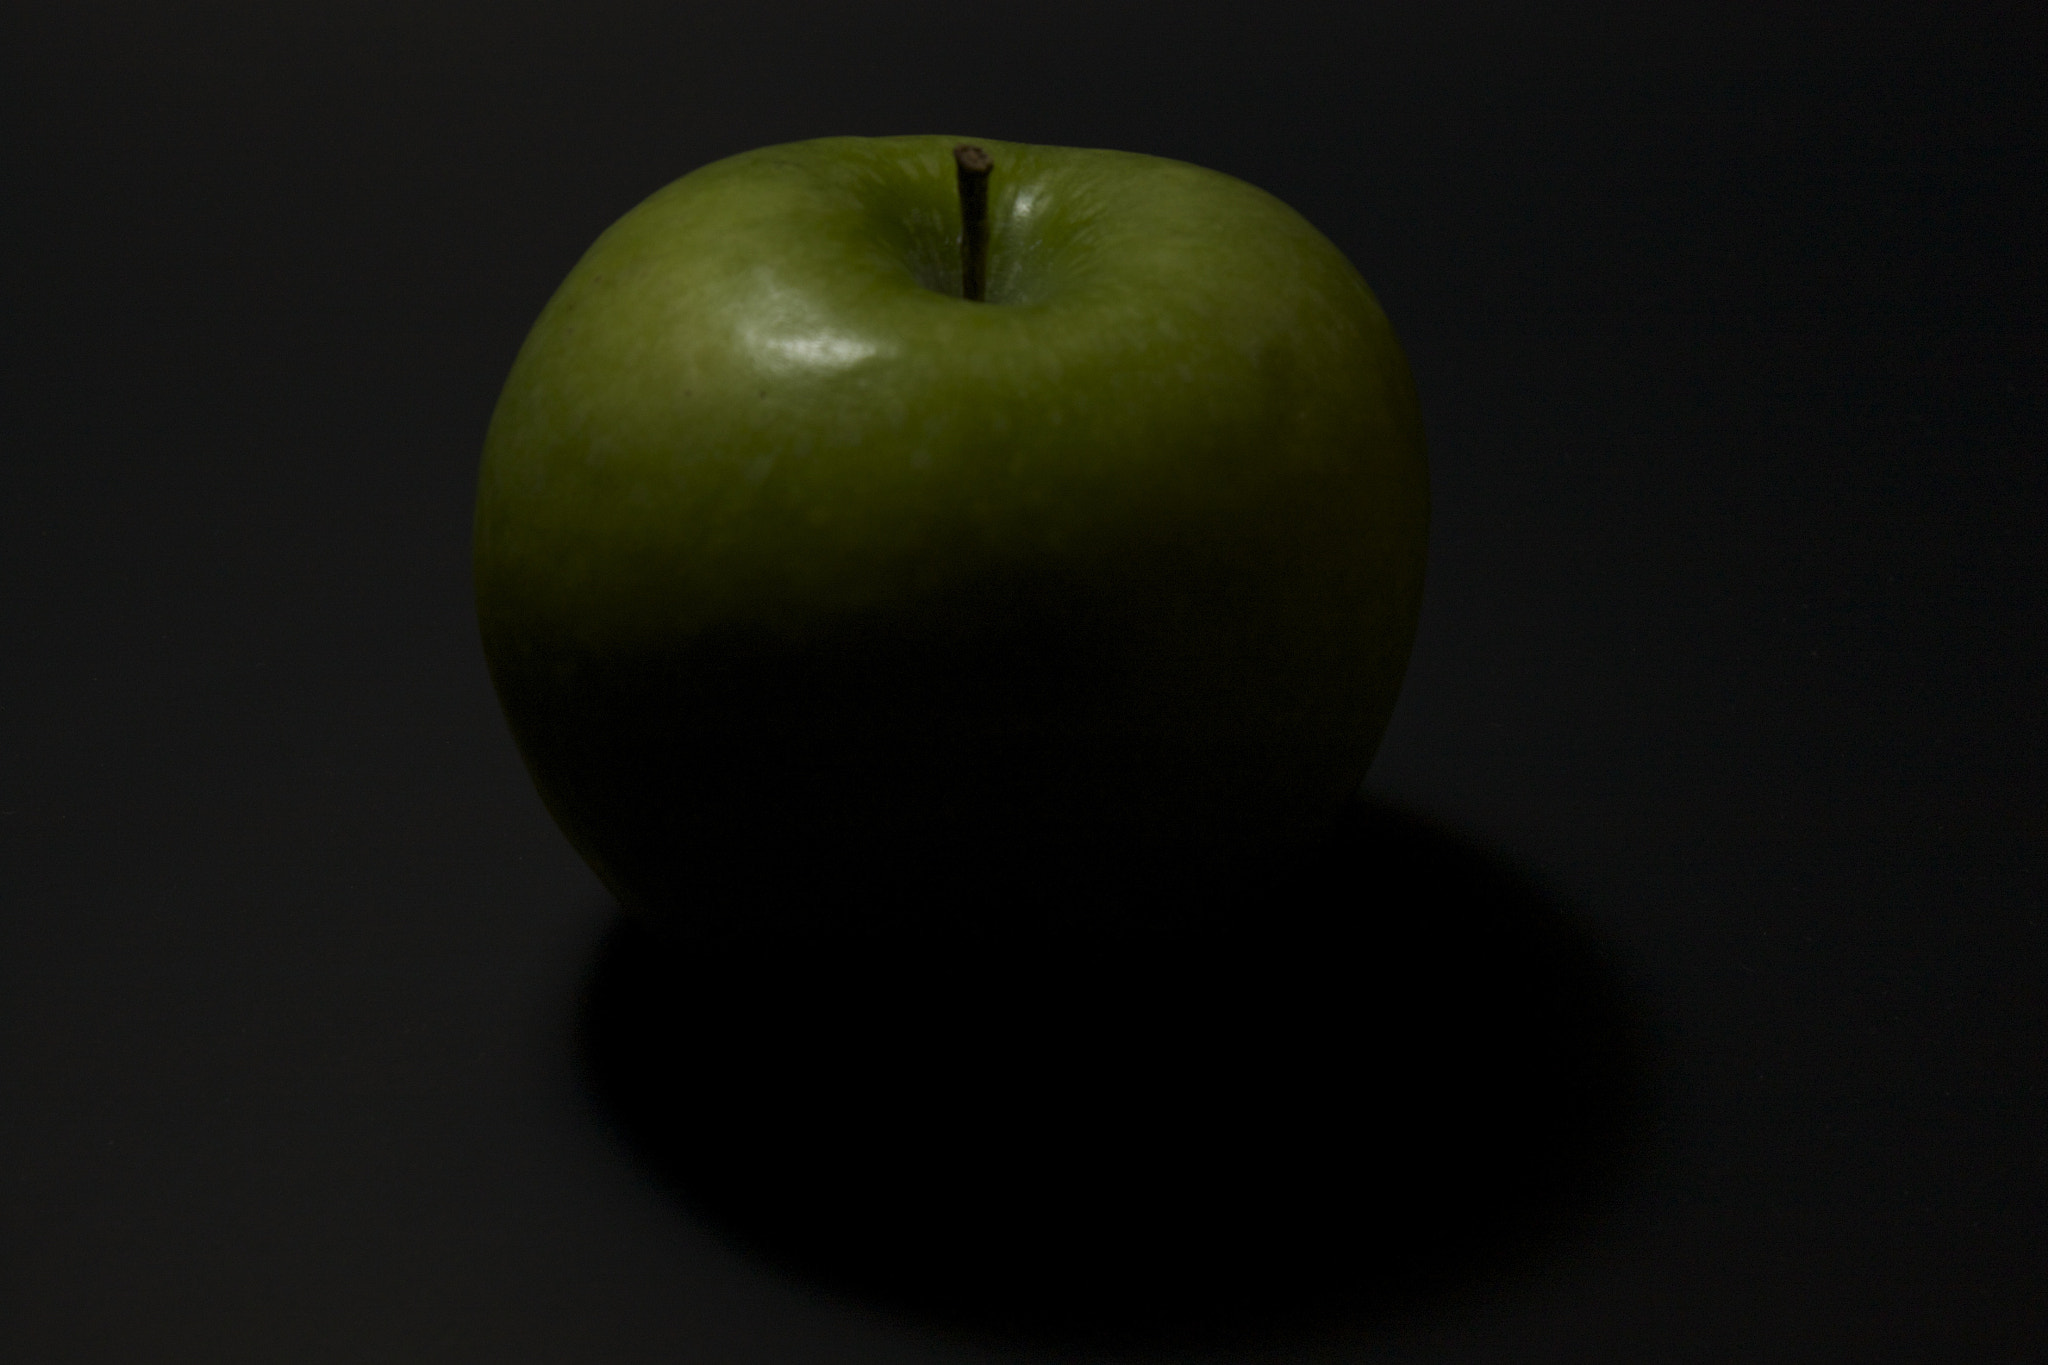 Photograph Apple by Chris Taylor on 500px